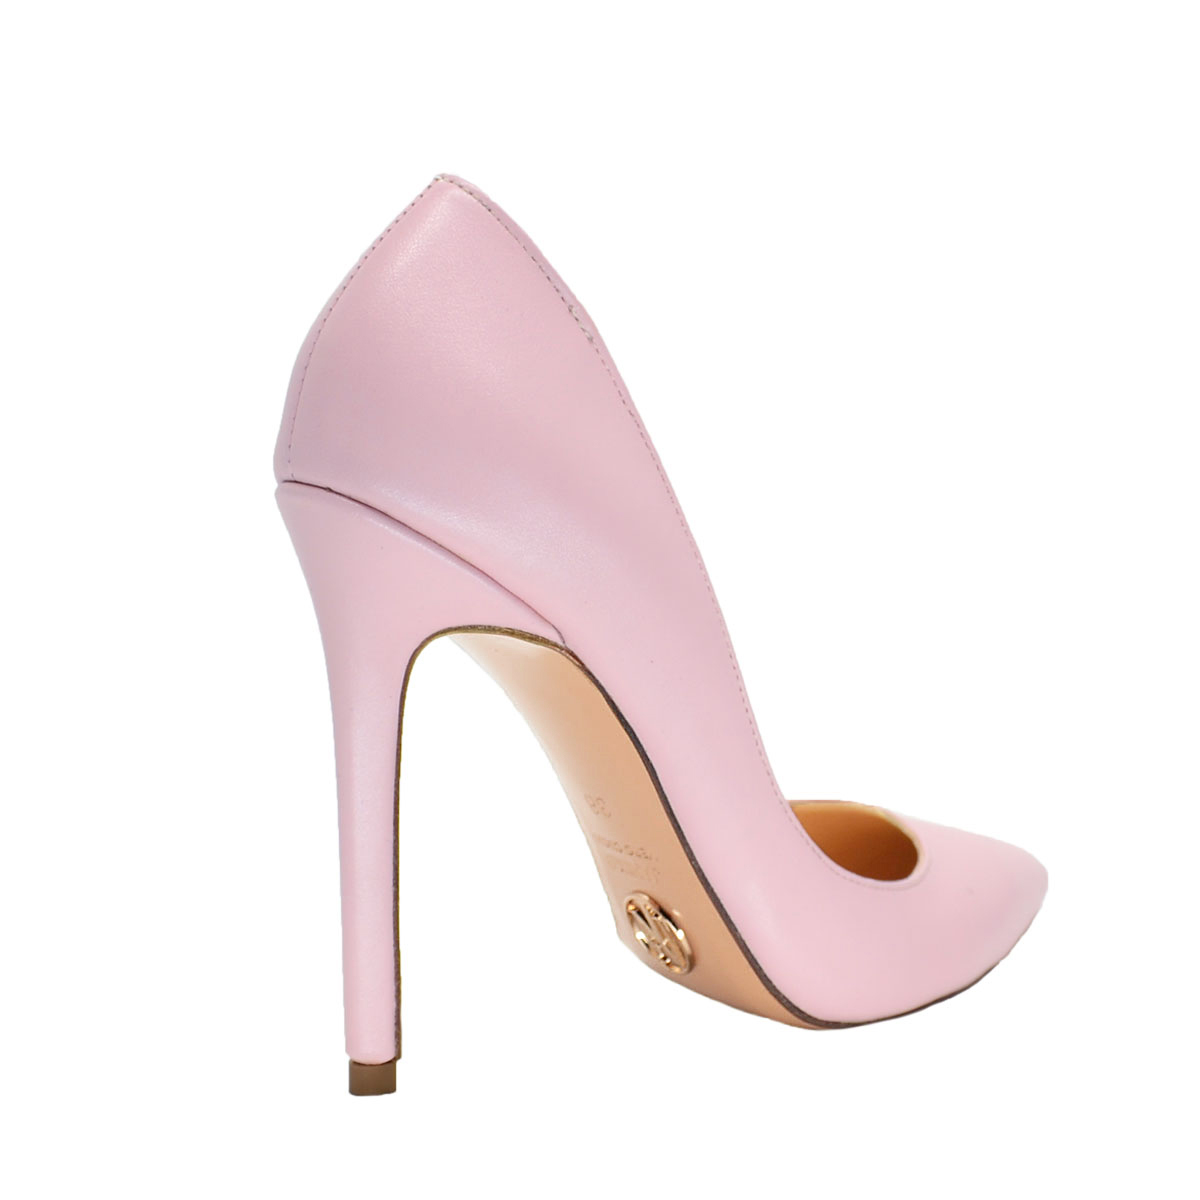 Janiko Damen High Heels ESTELLE Rosa R0077